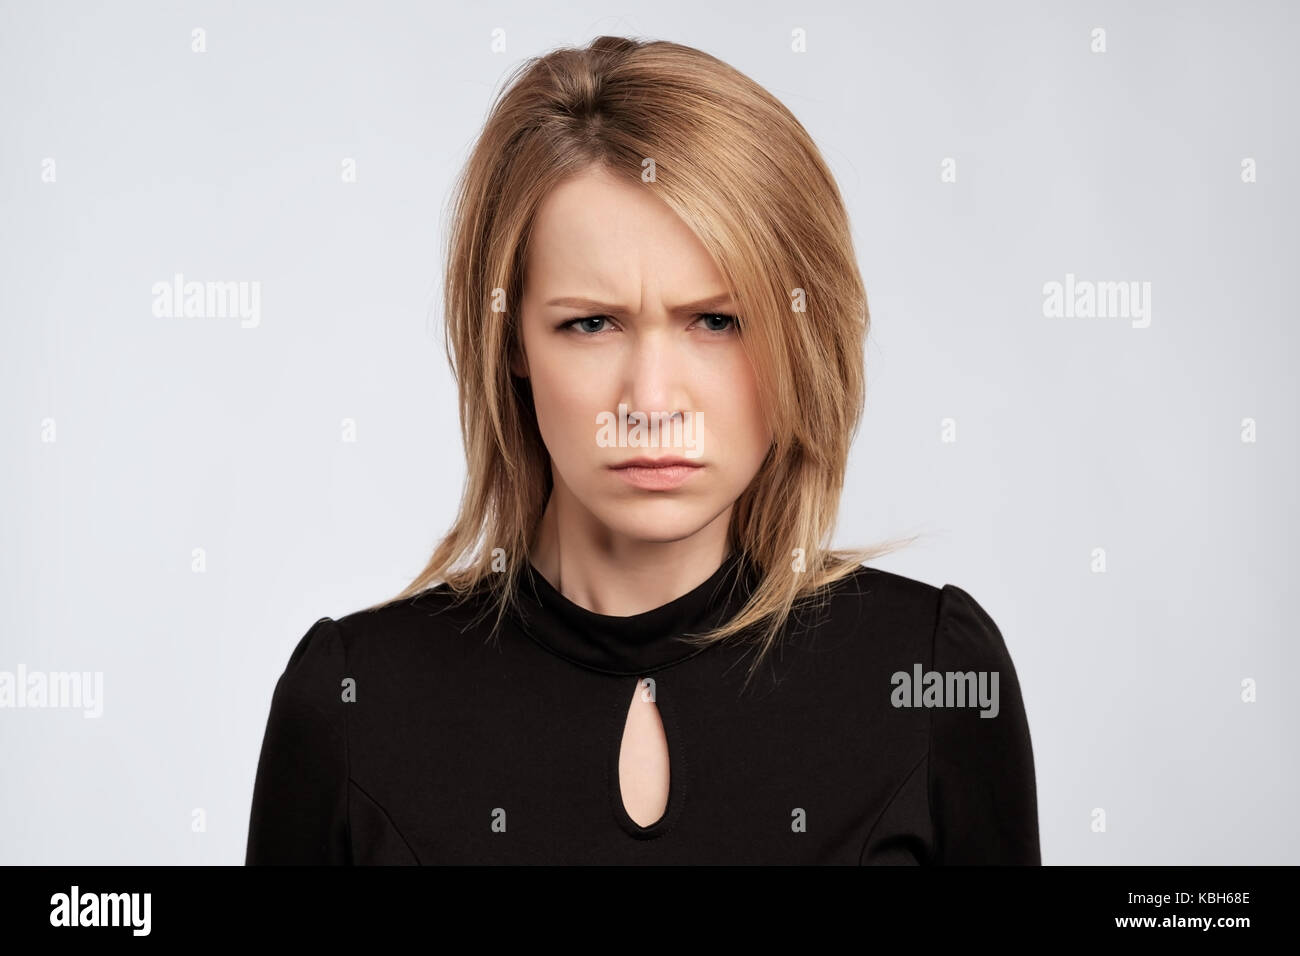 portrait of young serious angry woman with blond hair - Stock Image